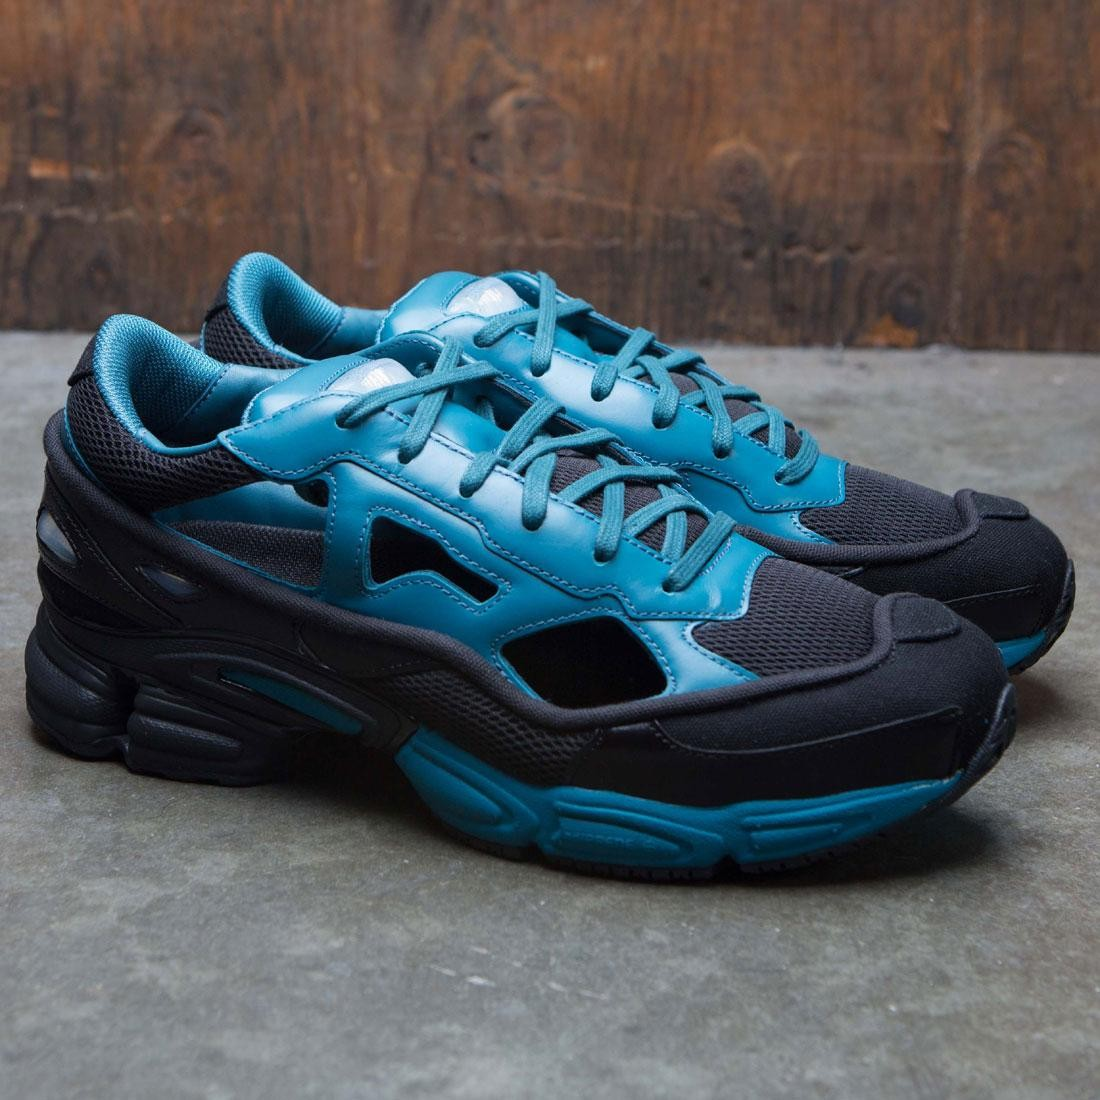 827c4111c1d94f Adidas x Raf Simons Men Replicant Ozweego (black   colonial blue   core  black)